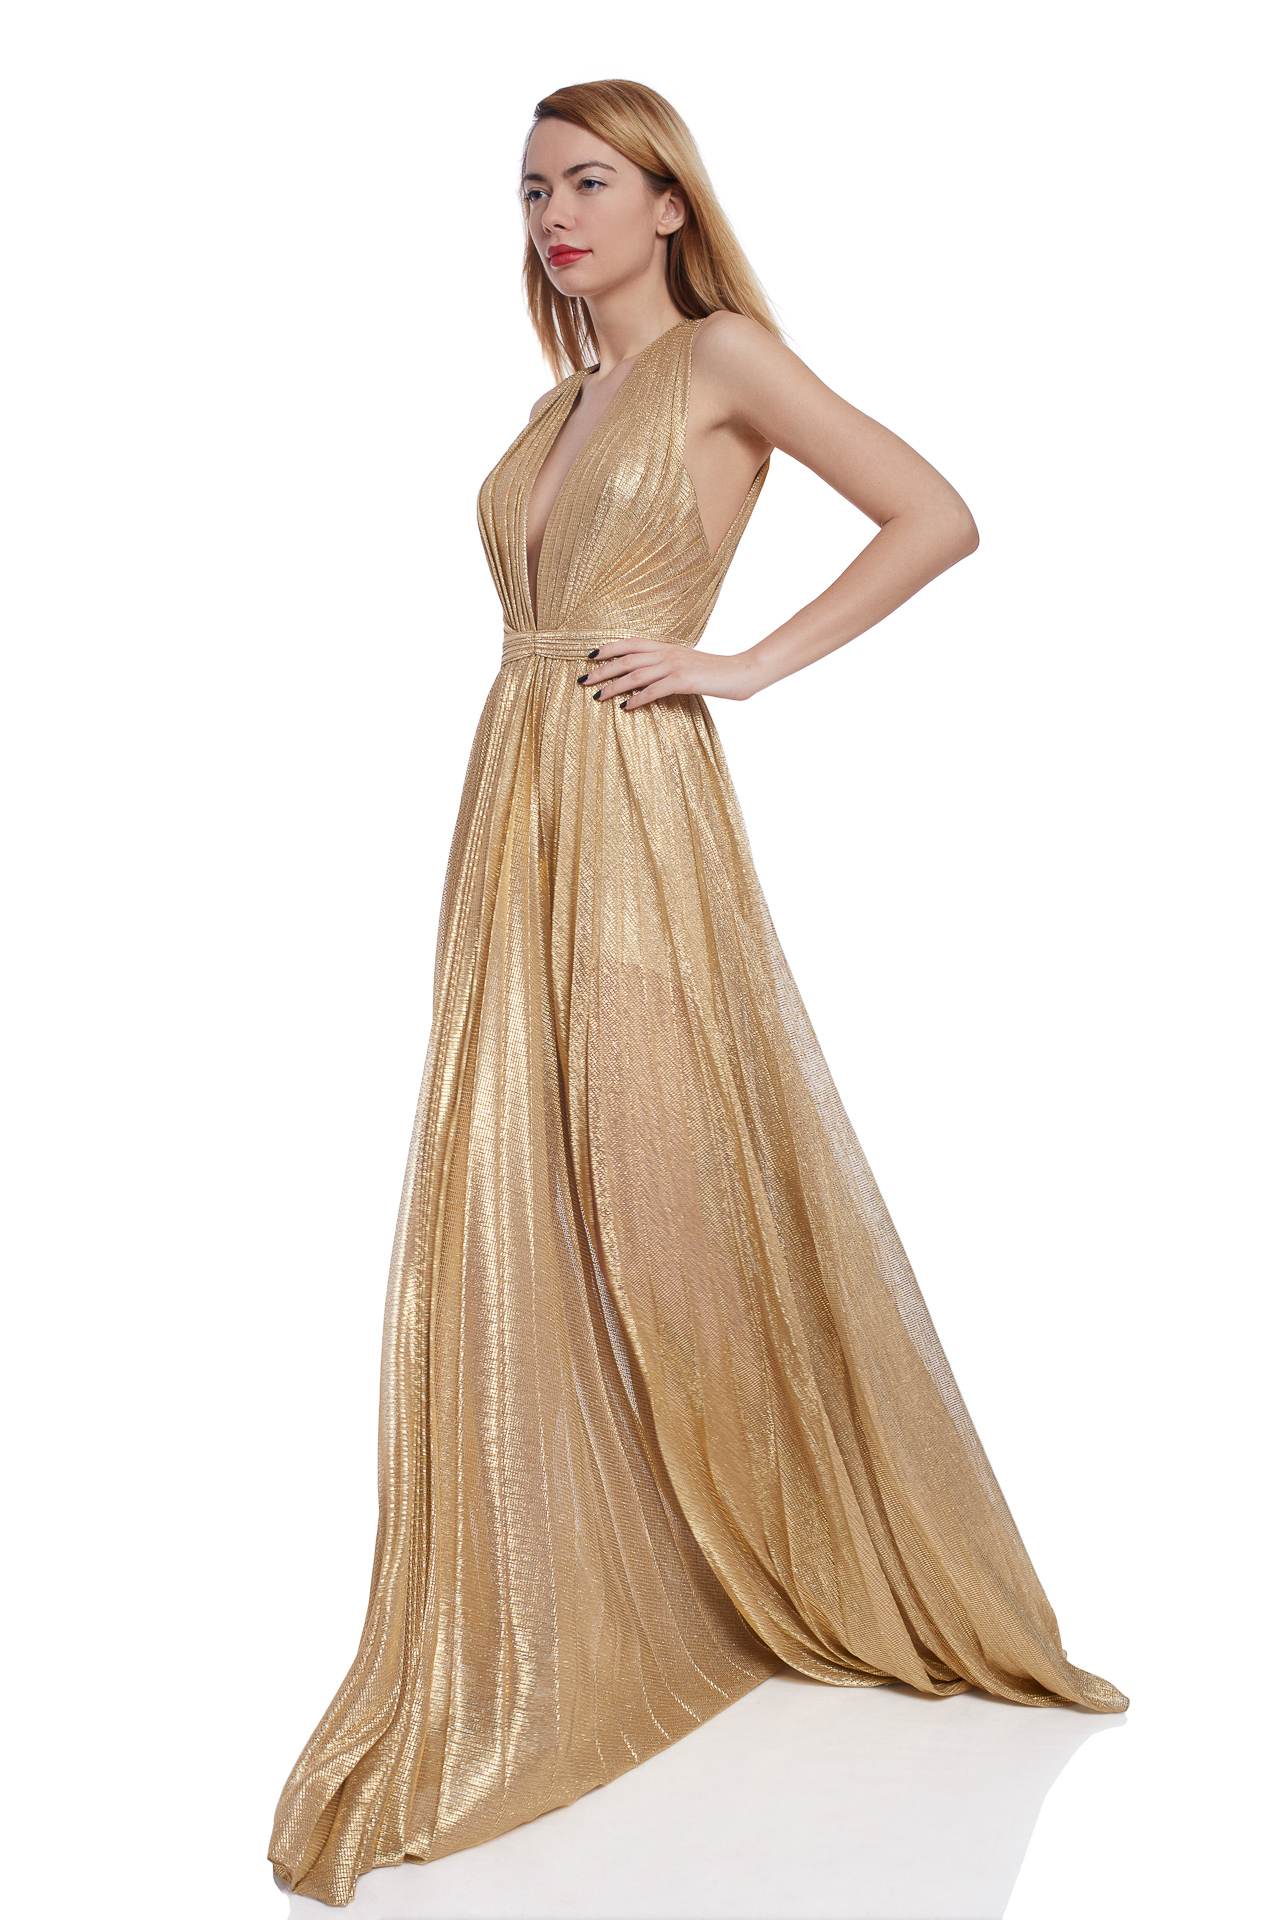 Golden foil evening gown